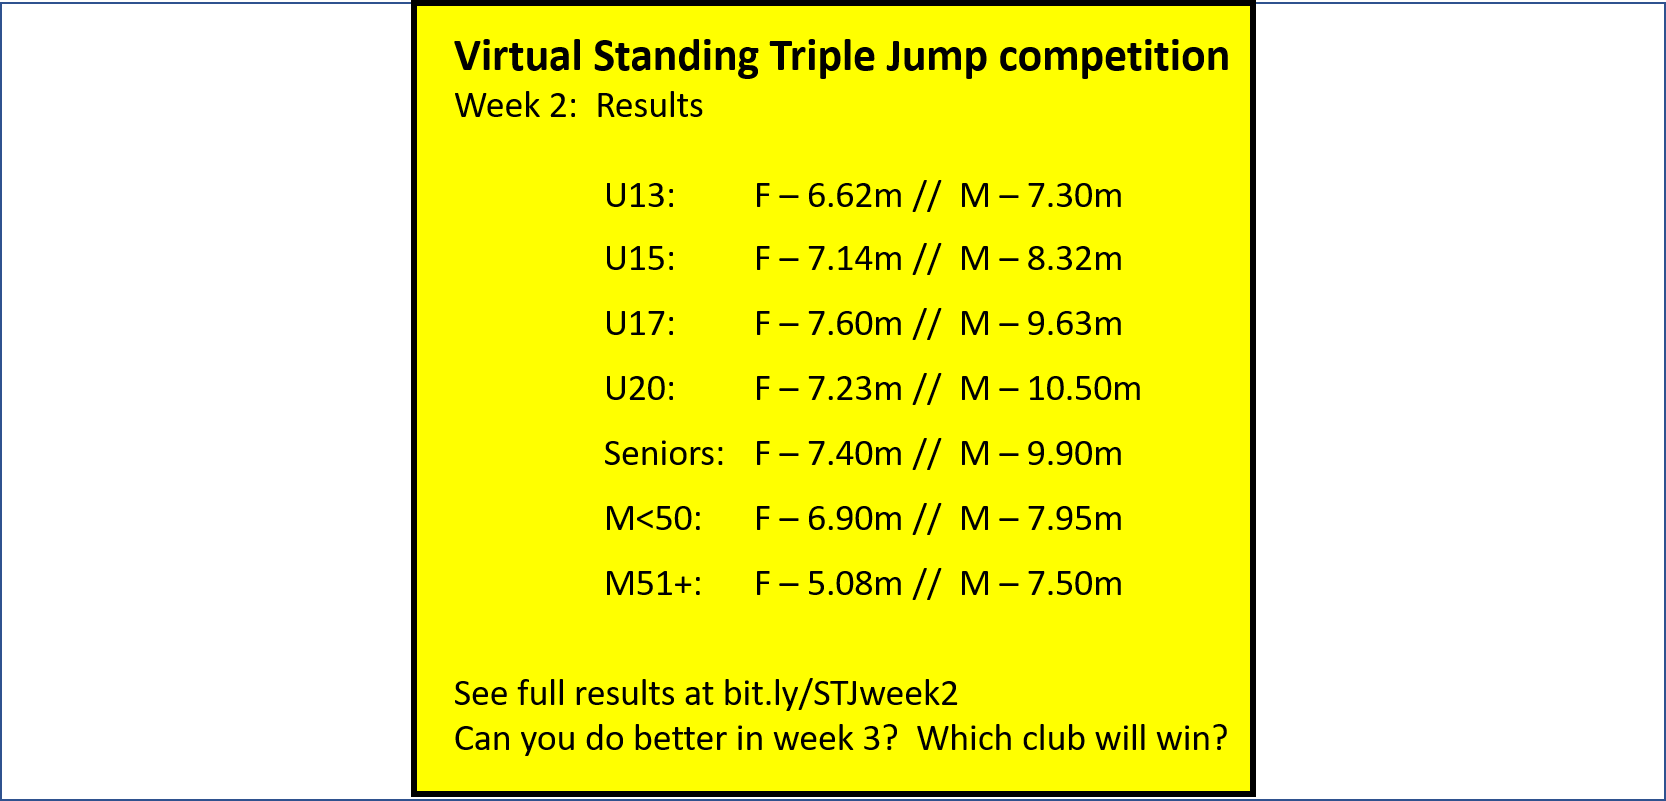 Virtual Standing Triple Jump Competition - Week 2 Results